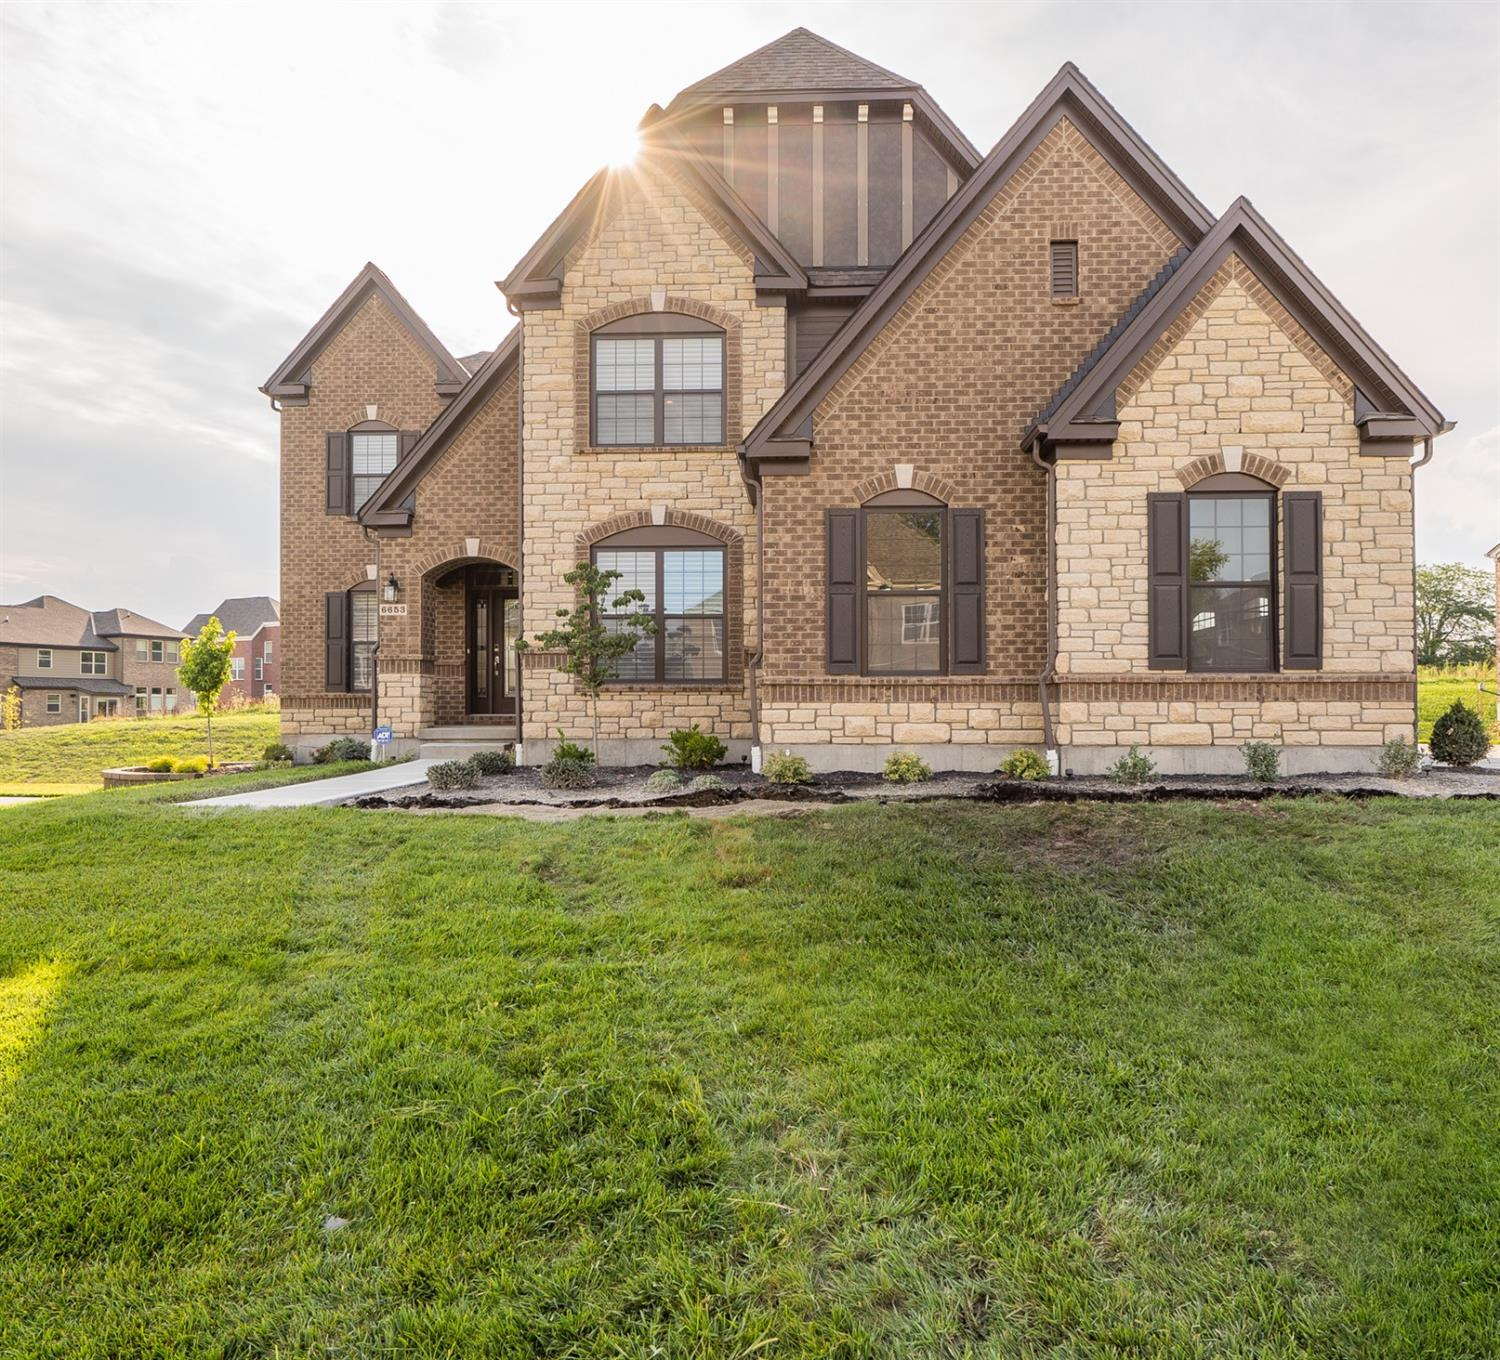 6653 Palmetto Dr Deerfield Twp., OH